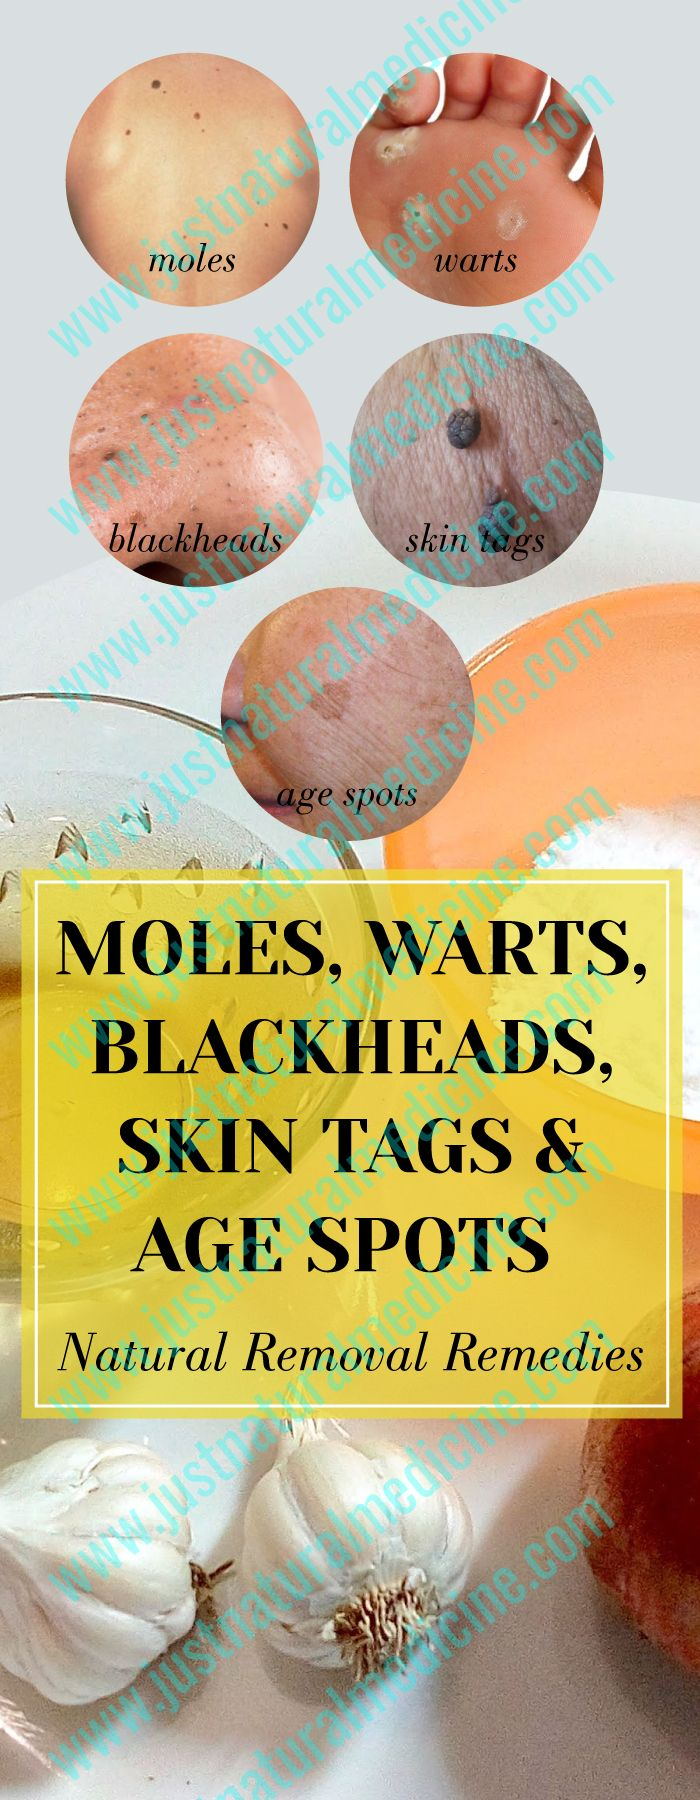 NATURAL WAYS TO DESTROY MOLES, WARTS, BLACKHEADS, SKIN TAGS AND AGE SPOTS!